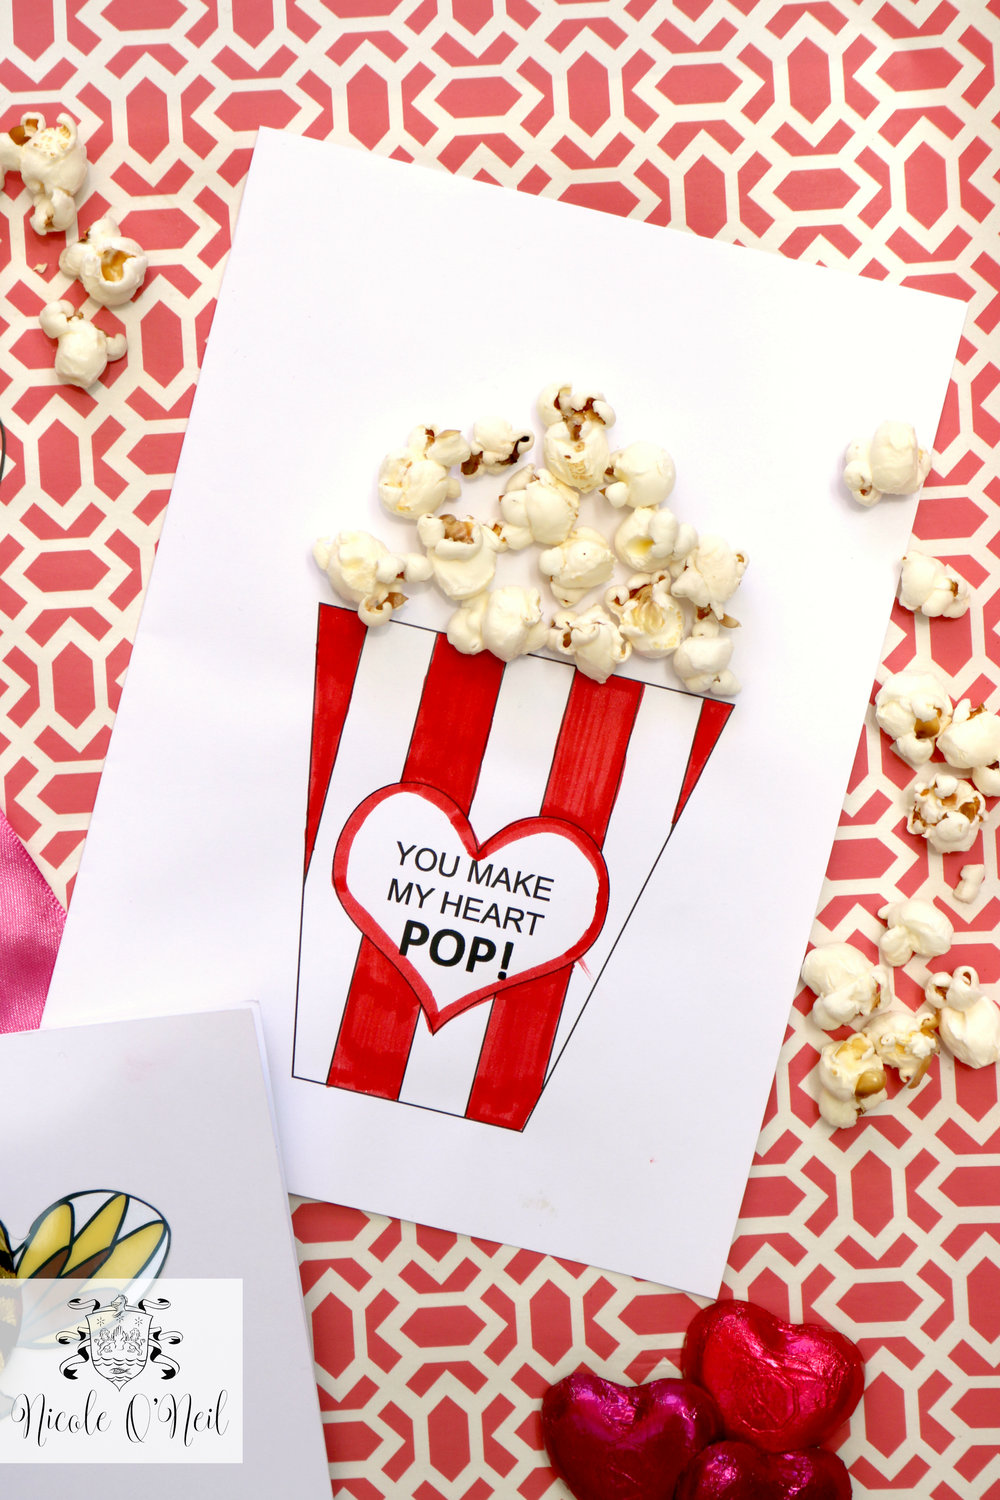 You Make My Heart Pop - Free Printable Valentines Day Cards and Instructions - Cute Valentines Crafts for Kids